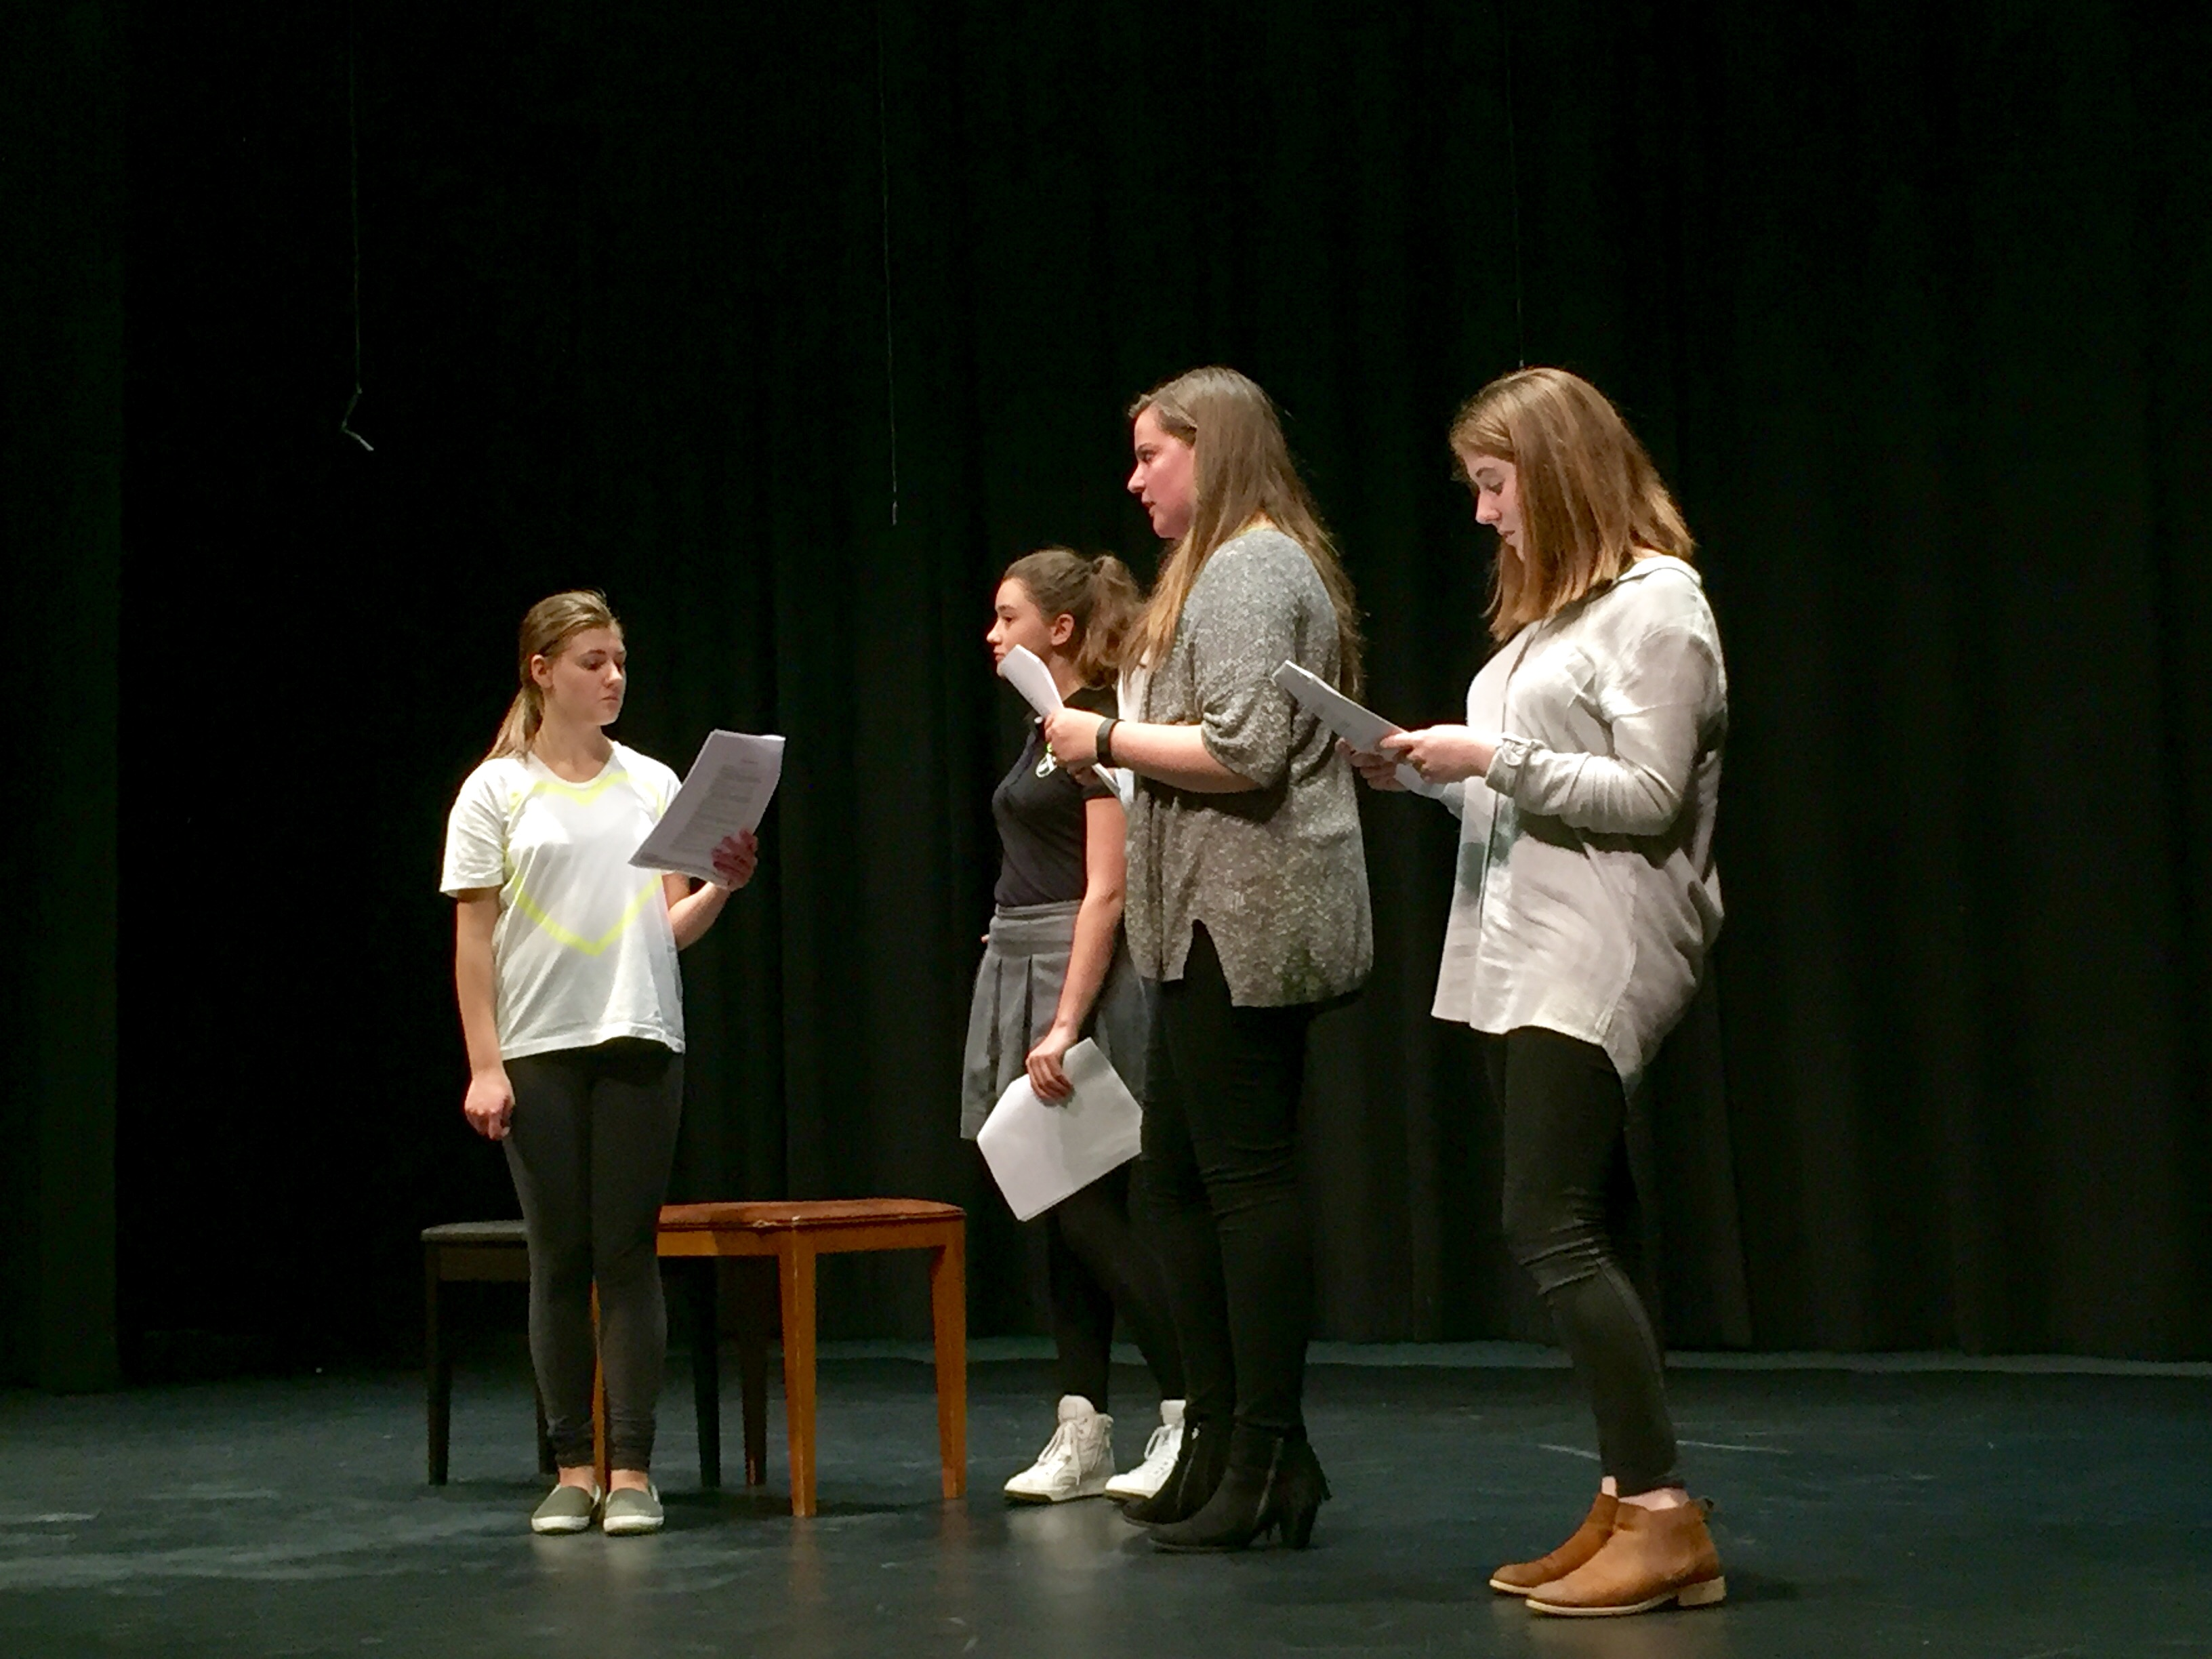 (From left) Junior Ariana Davidis, Sophomore Delaney Tobin, Junior Francesca Petruzzelli and Sophomore Sophie Egan act out a scene from the play for their group audition piece.